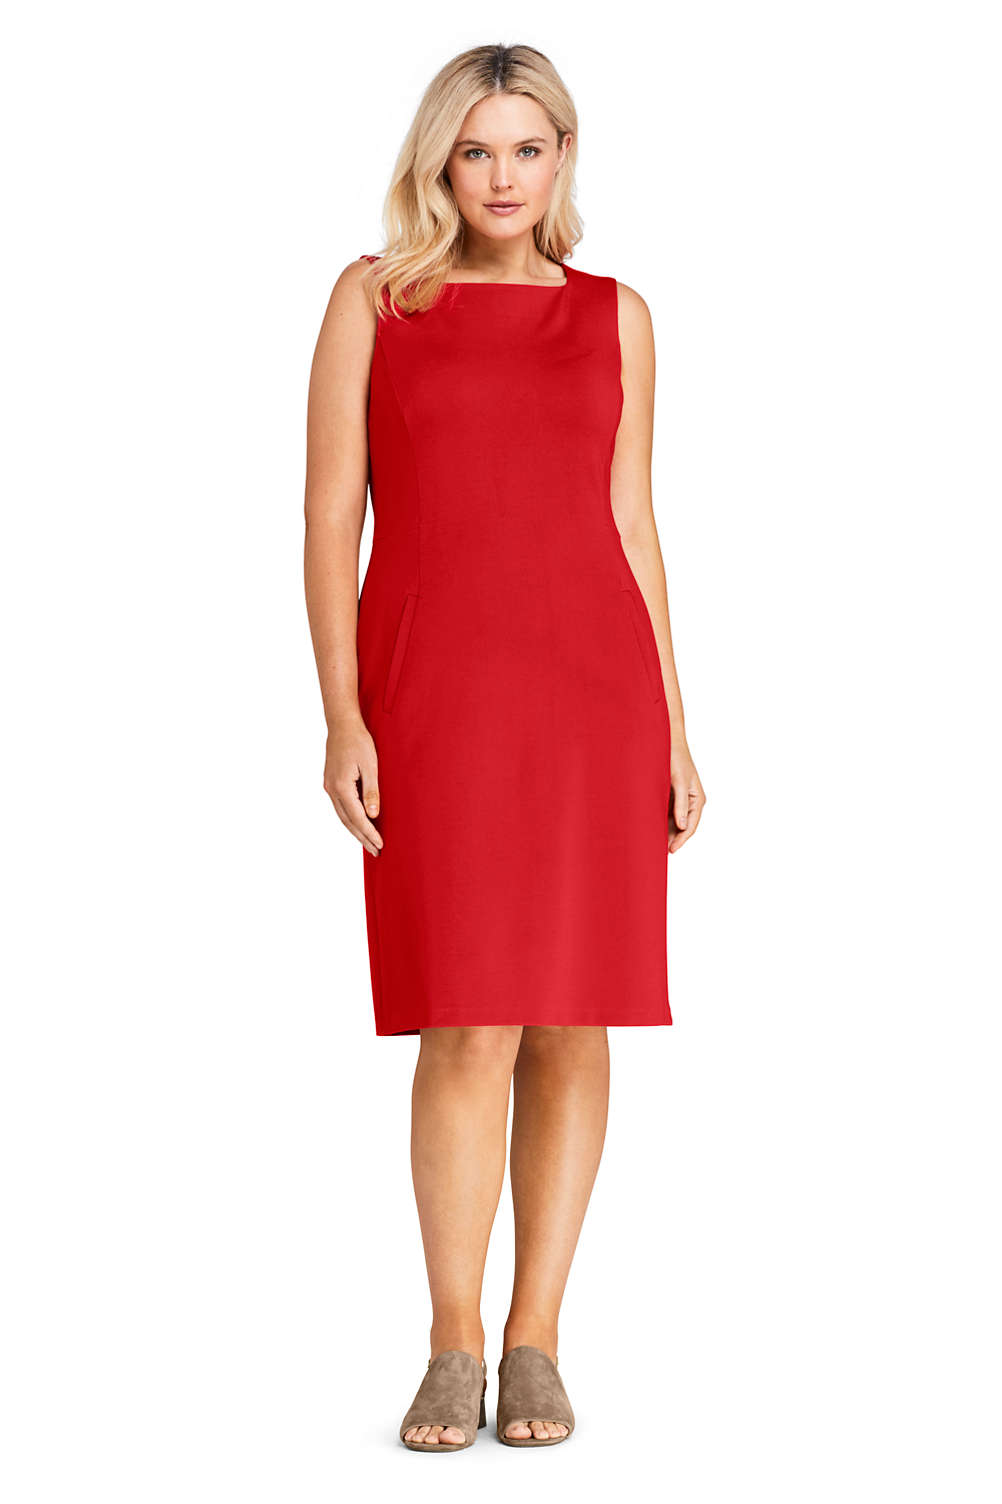 8212295787d Women s Plus Size Sleeveless Square Neck Ponte Sheath Dress from Lands  End